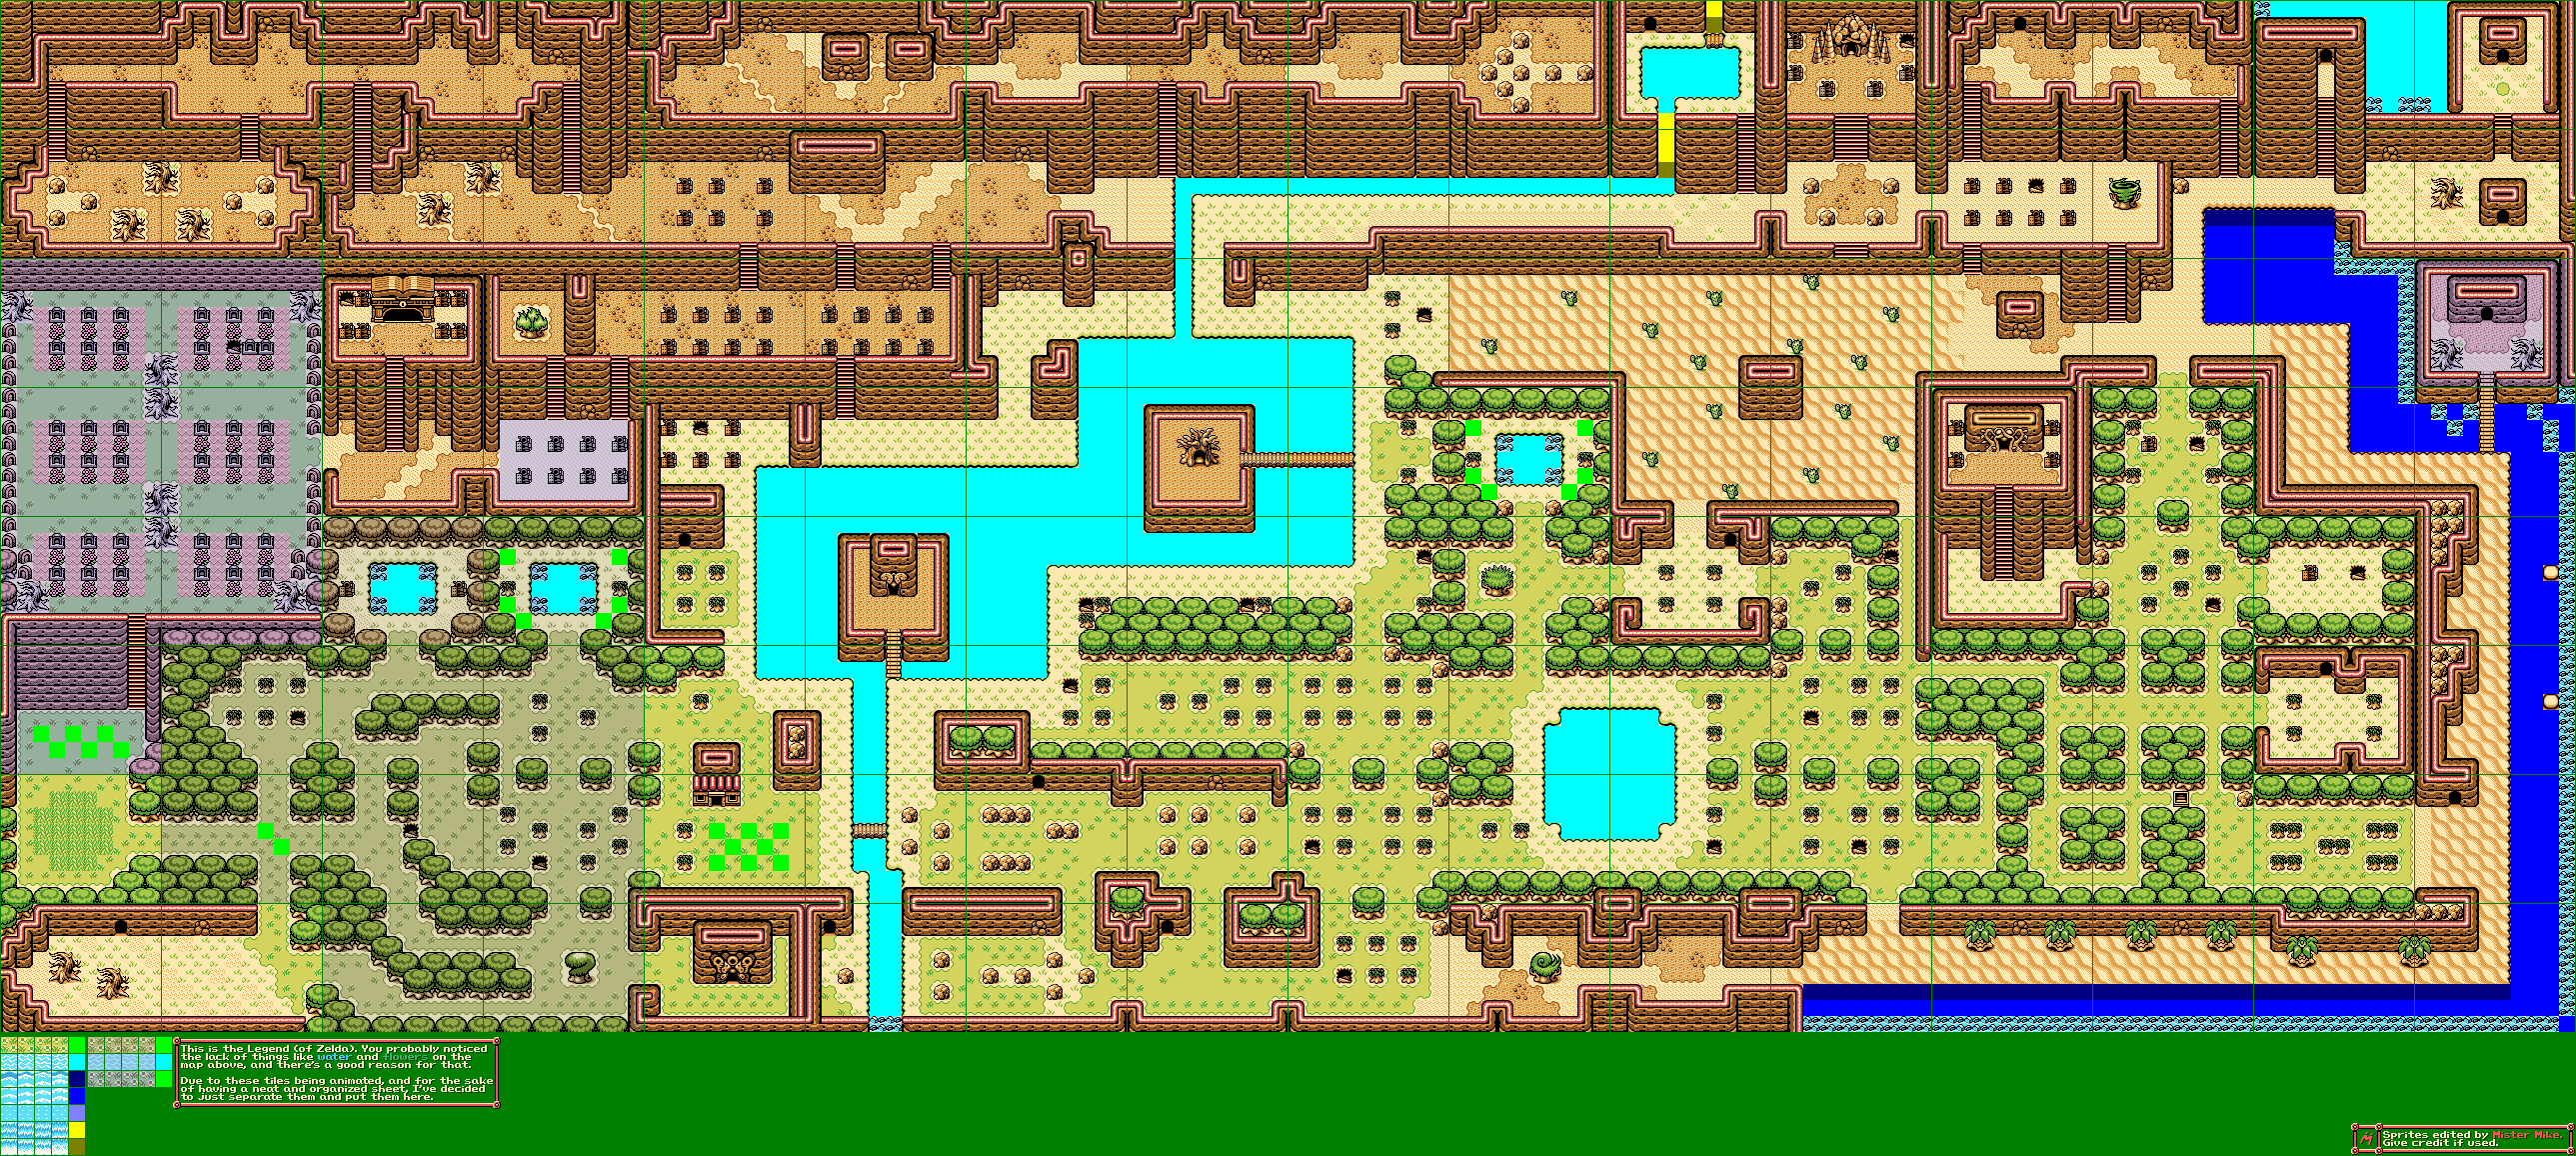 The Legend of Zelda Overworld (Oracle of Seasons-Style)